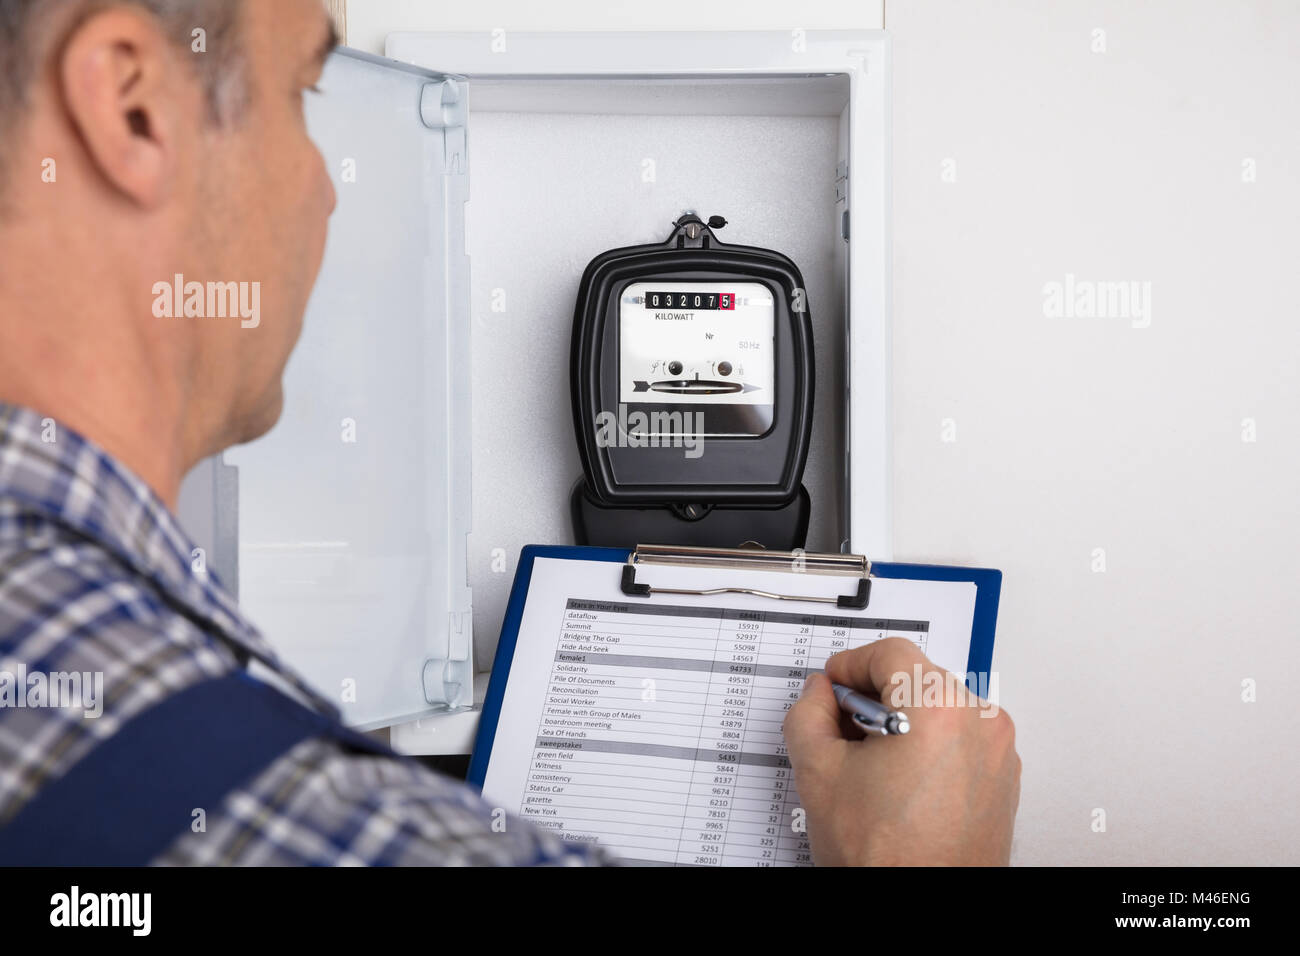 A degree for meter readers essay